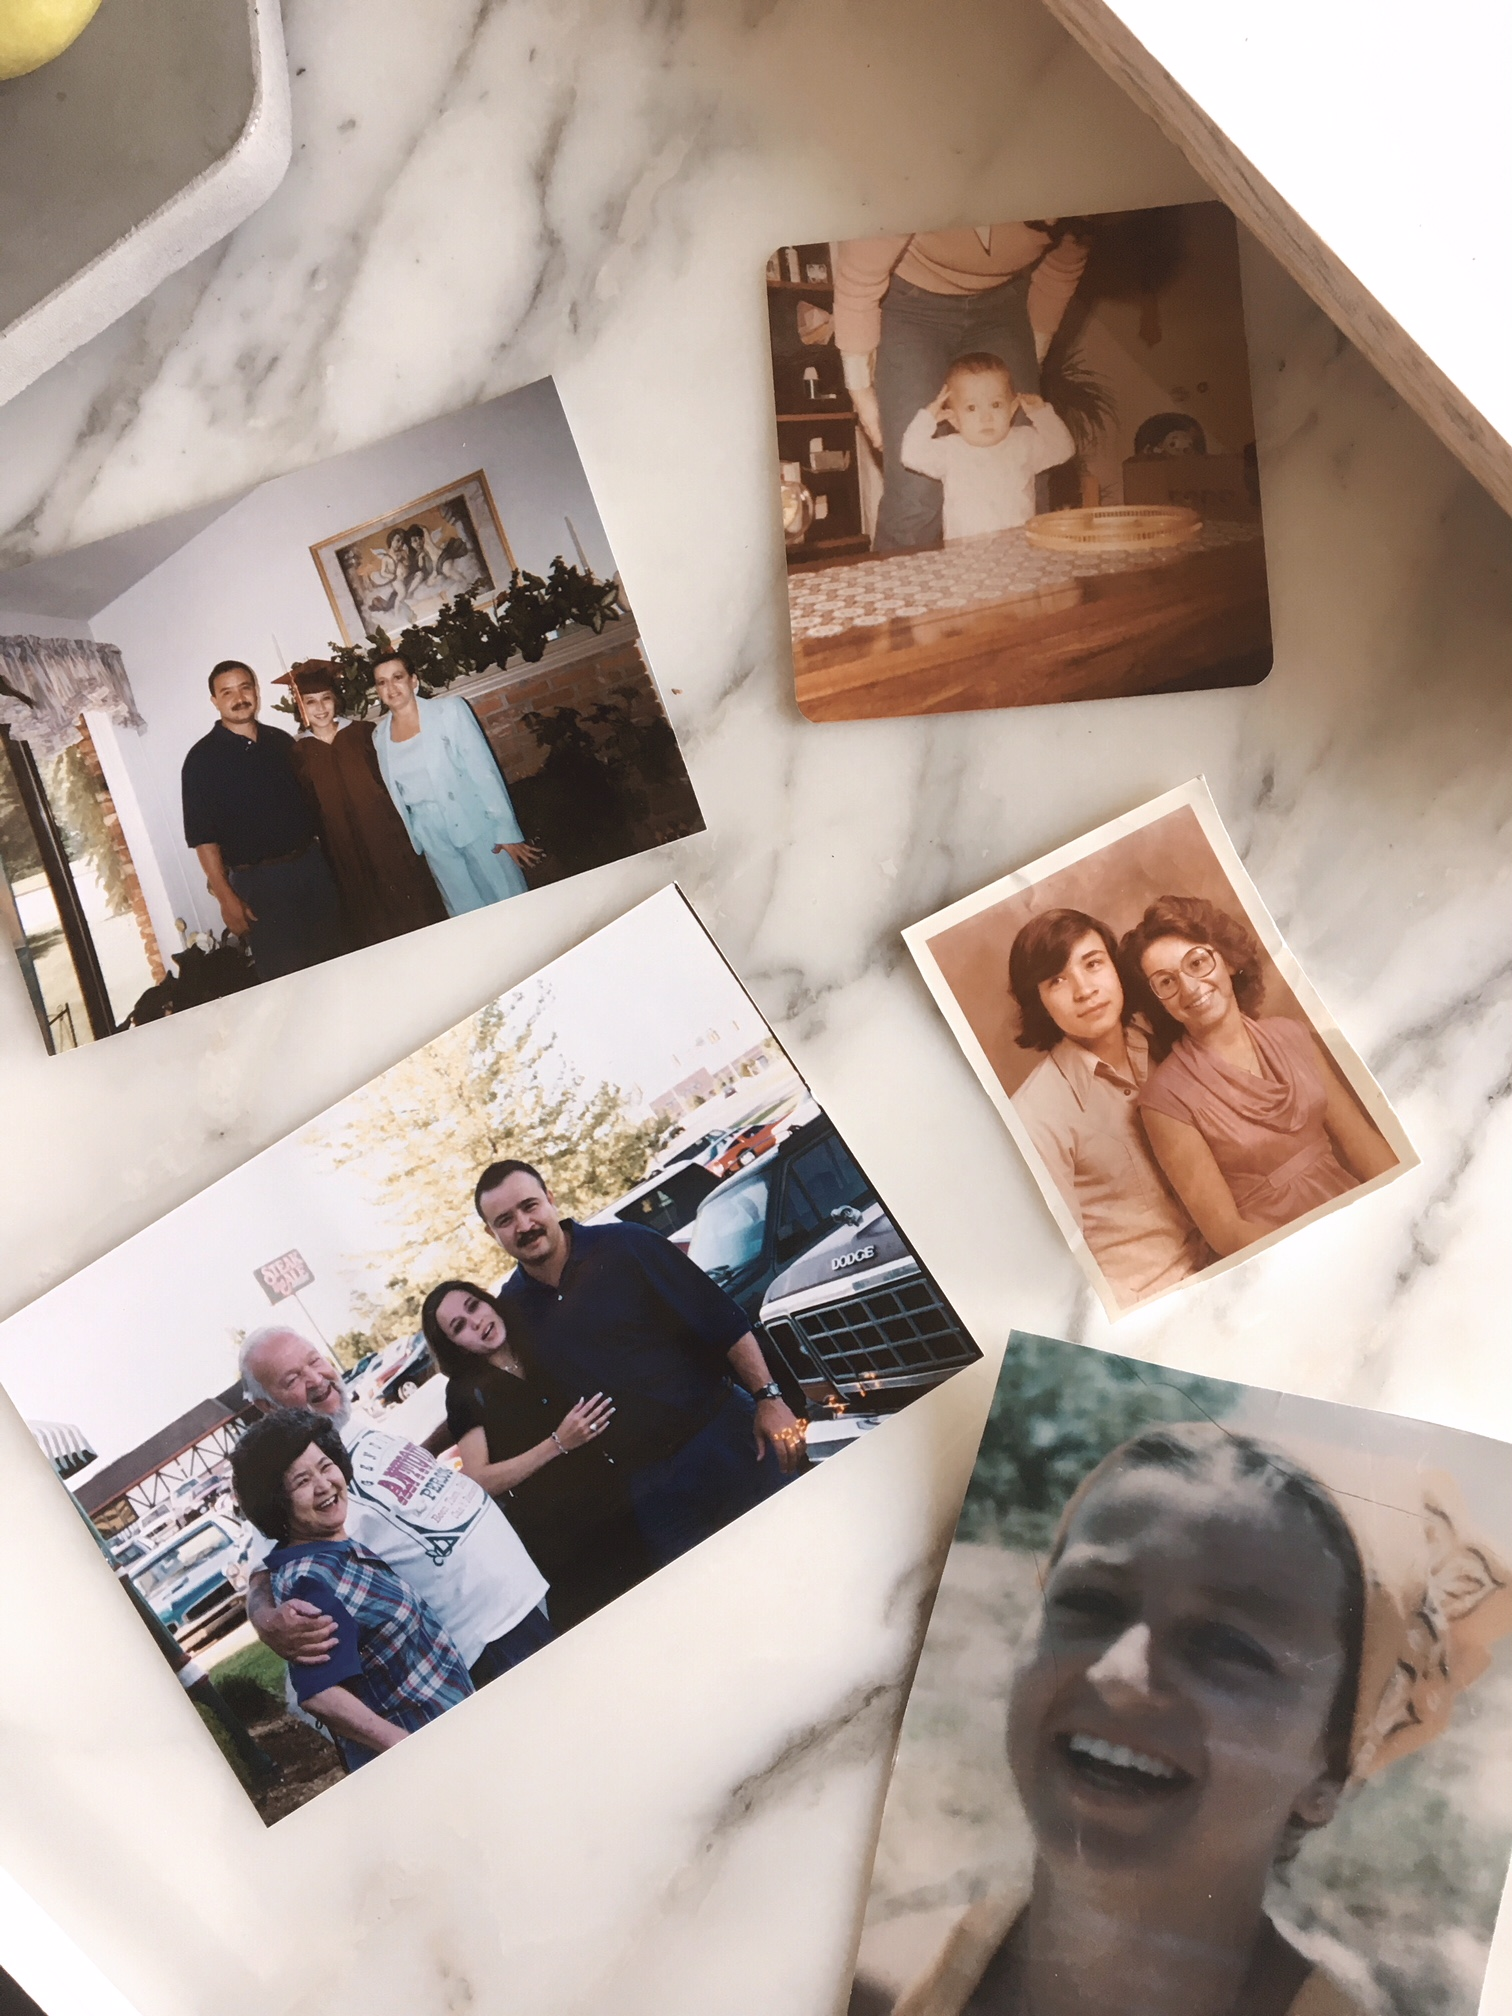 Old photos of my mom, dad, and grandpa and grandma